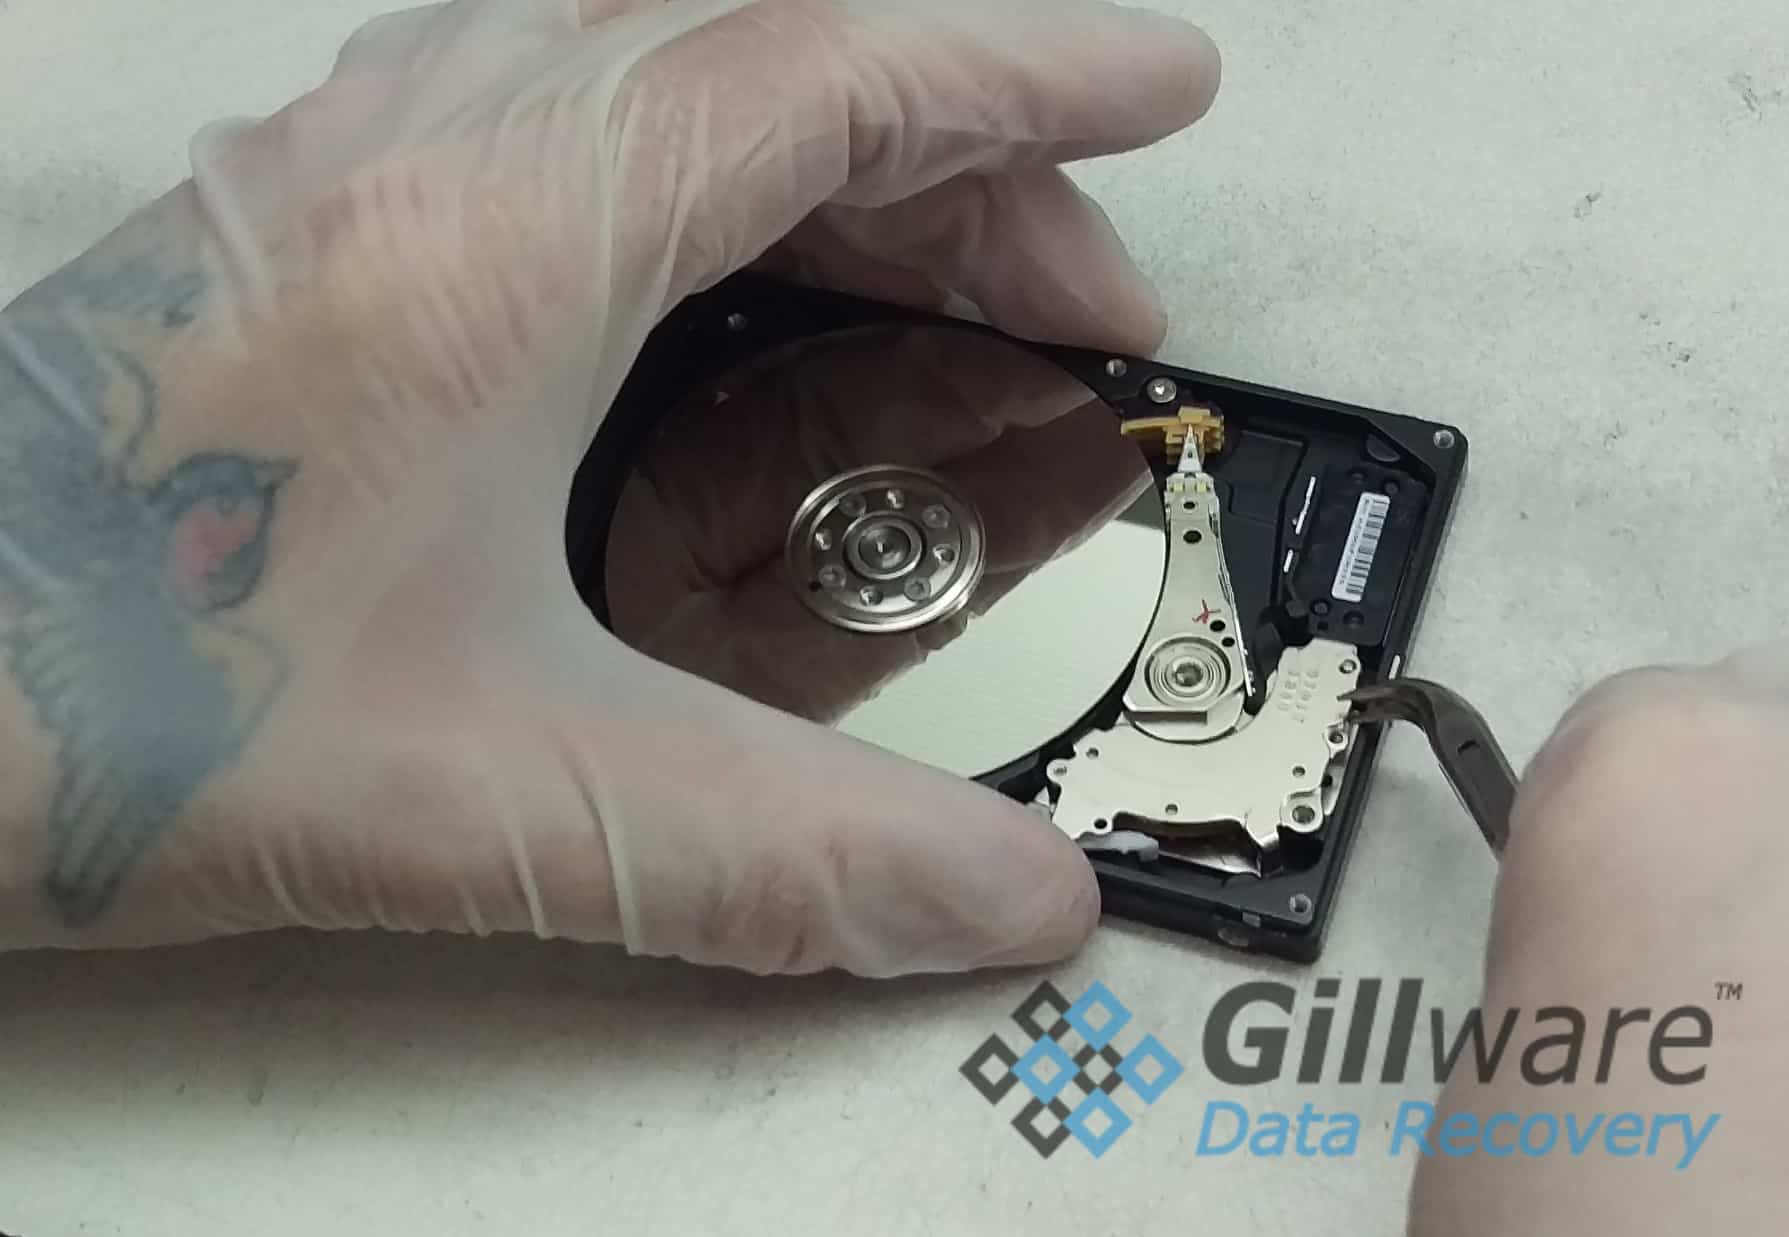 Repairing a failed hard drive after a power outage can require a heads swap in our cleanroom.